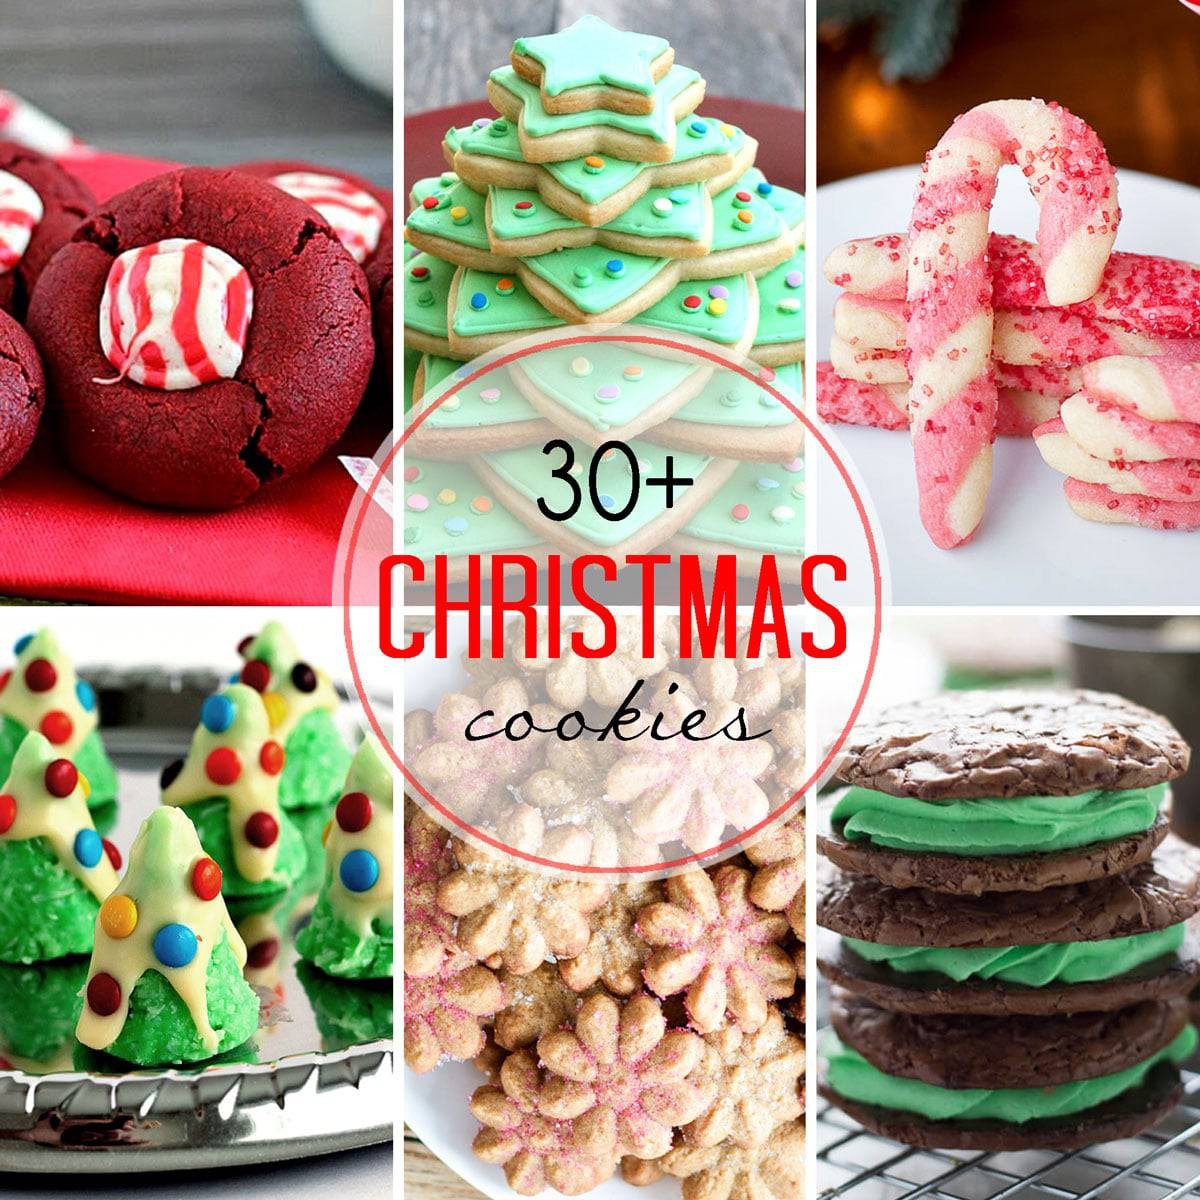 Recipes For Christmas Cookies  30 Plus Festive Christmas Cookie Recipes — Let s Dish Recipes